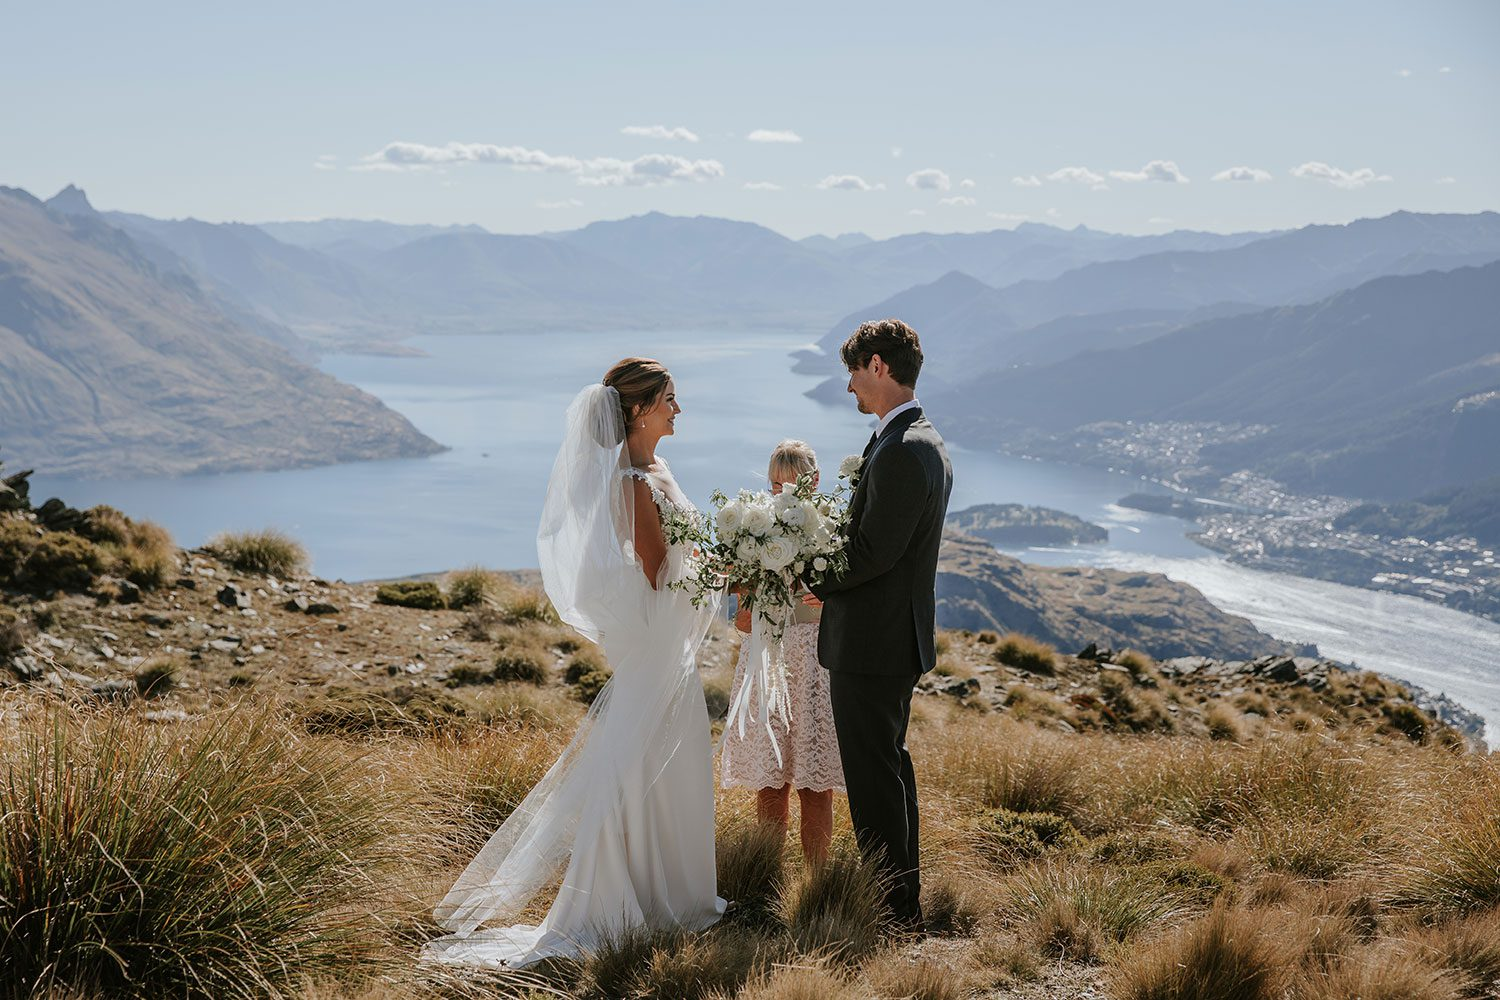 Bride wearing bespoke bridal gown with richly beaded lace over sheer tulle bodice and low back from Auckland wedding dress designer Vinka designs - saying vows